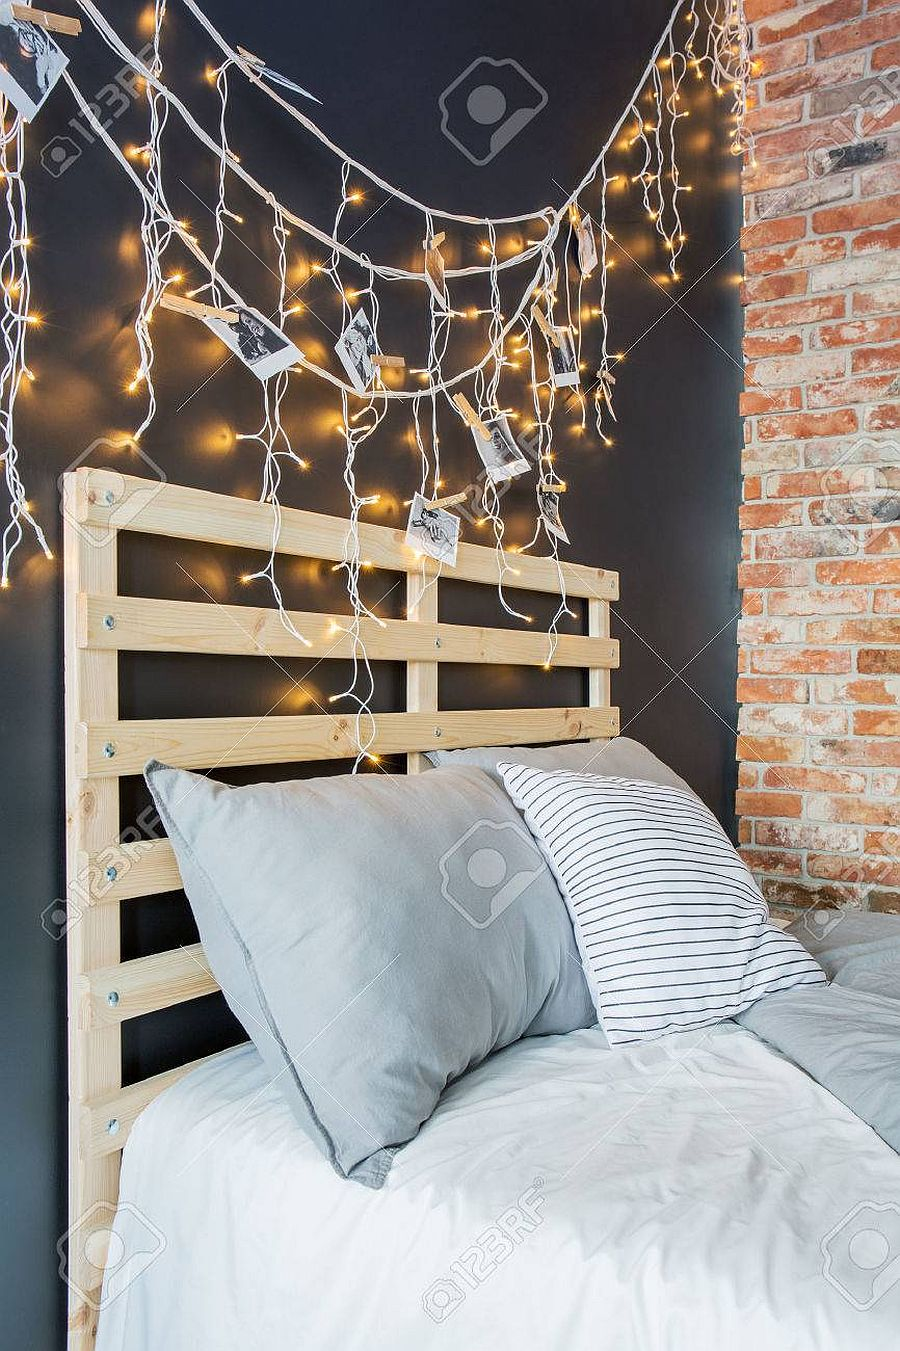 Eye-catching bedroom lighting and DIY pallet headboard make a big impression